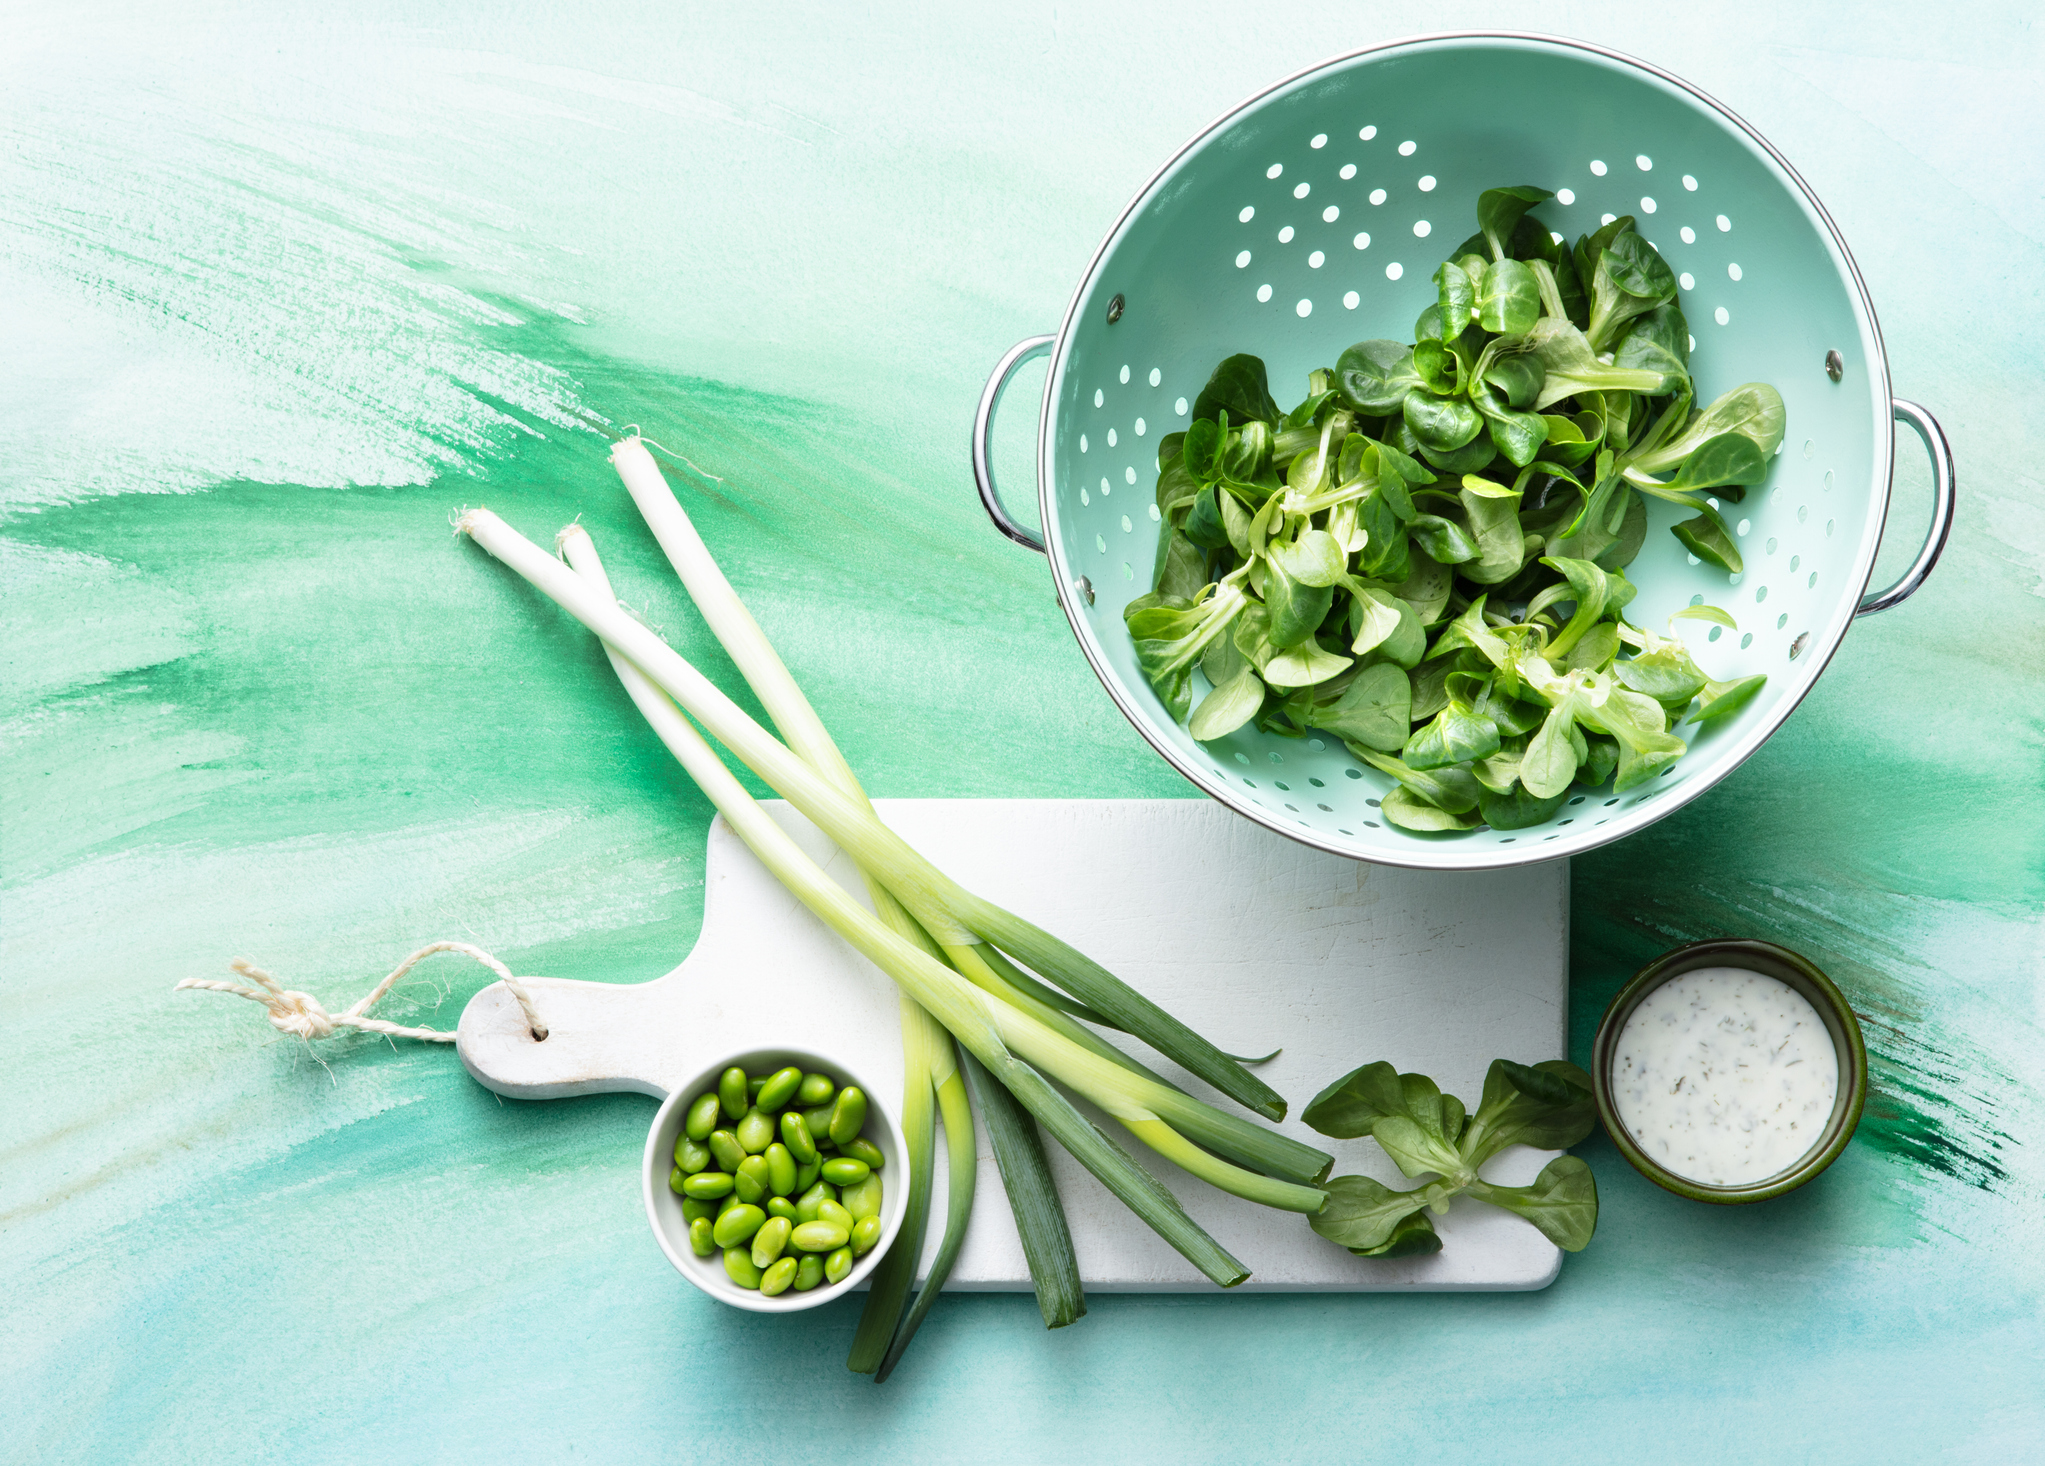 Salads: Ingredients for a Green Salad